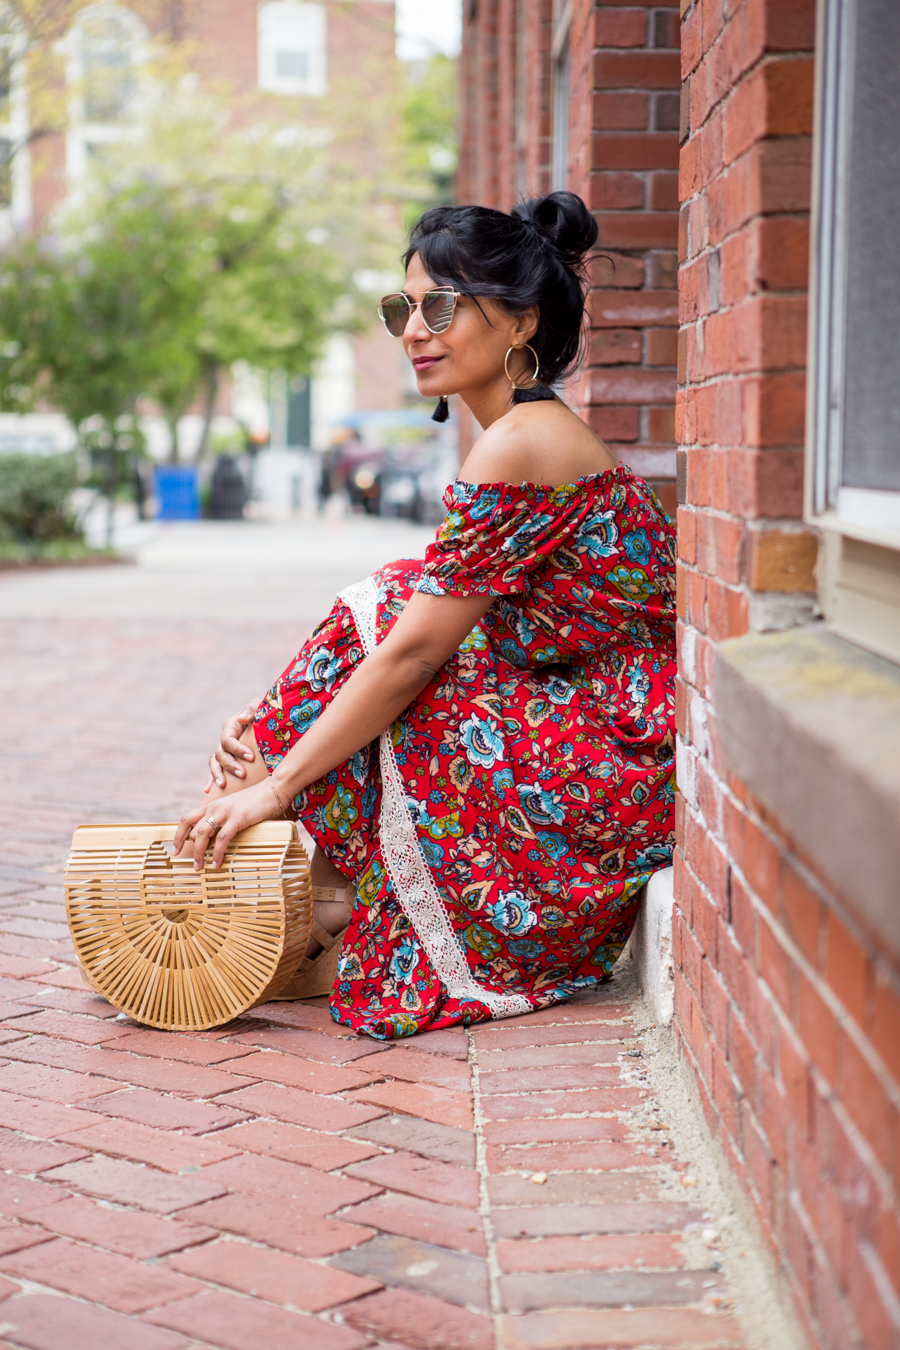 cult gaia, floral, maxi dress, midi dress, summer style, summer fashion, sundress, vacay style, petite blogger, petite fashion, women's fashion, over 40 fashion, fashion in your 40's, cork wedge, forever 21, platform sandals, colorful, feminine style, boho, boho chic, tassels, fringe